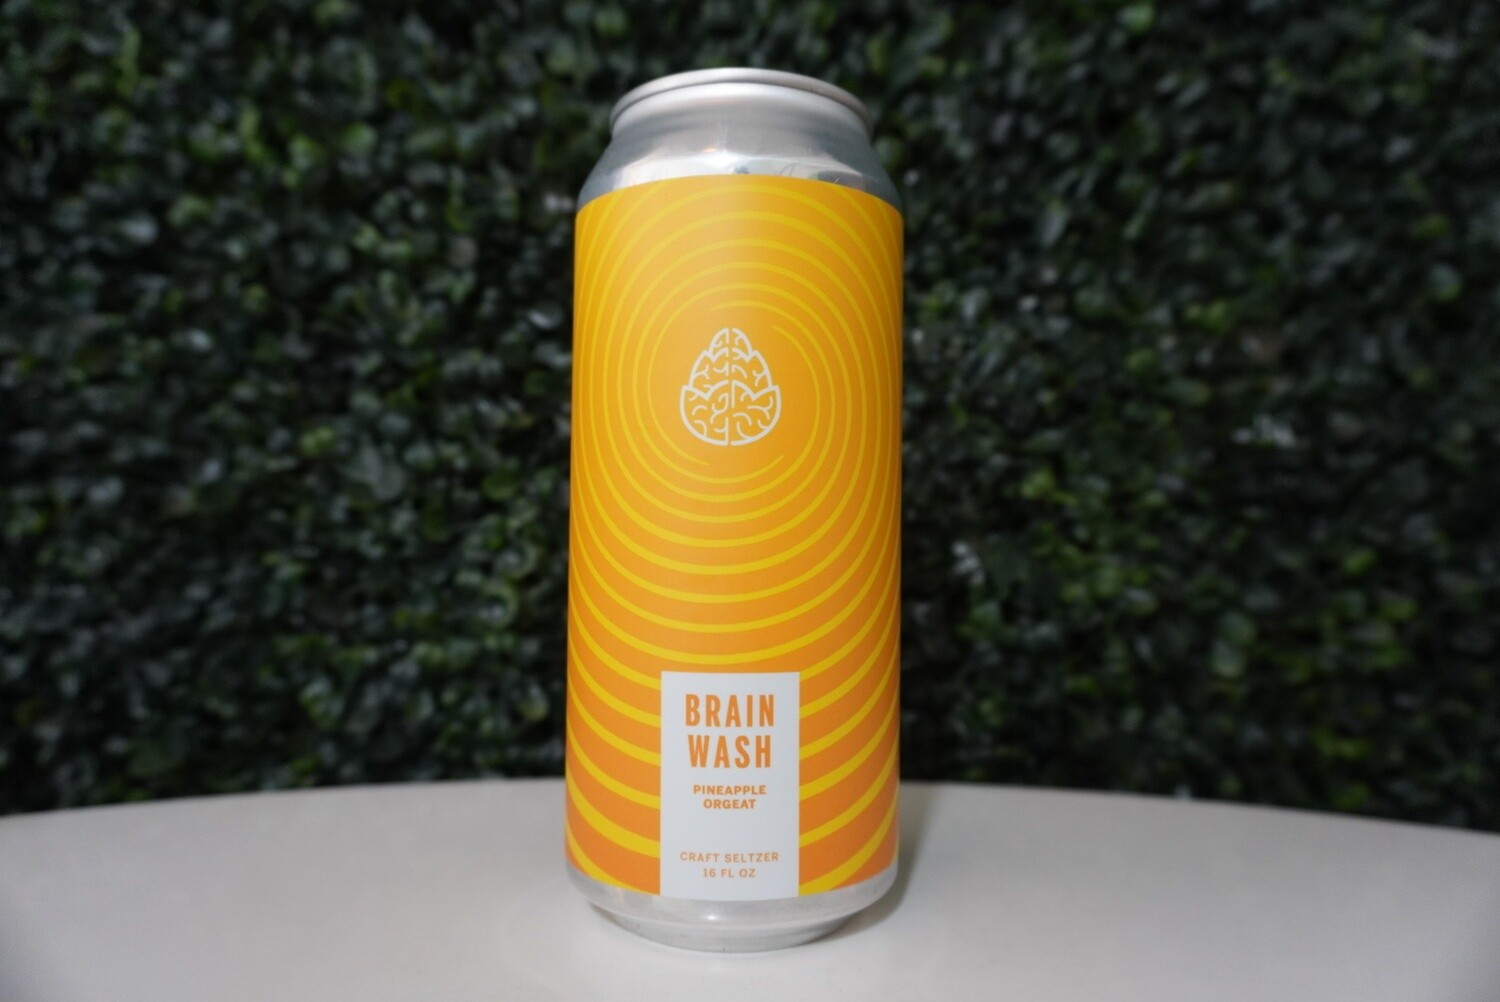 Cerebral - Brain Wash Pineapple - Hard Seltzer - 4.8% ABV - 16oz Can